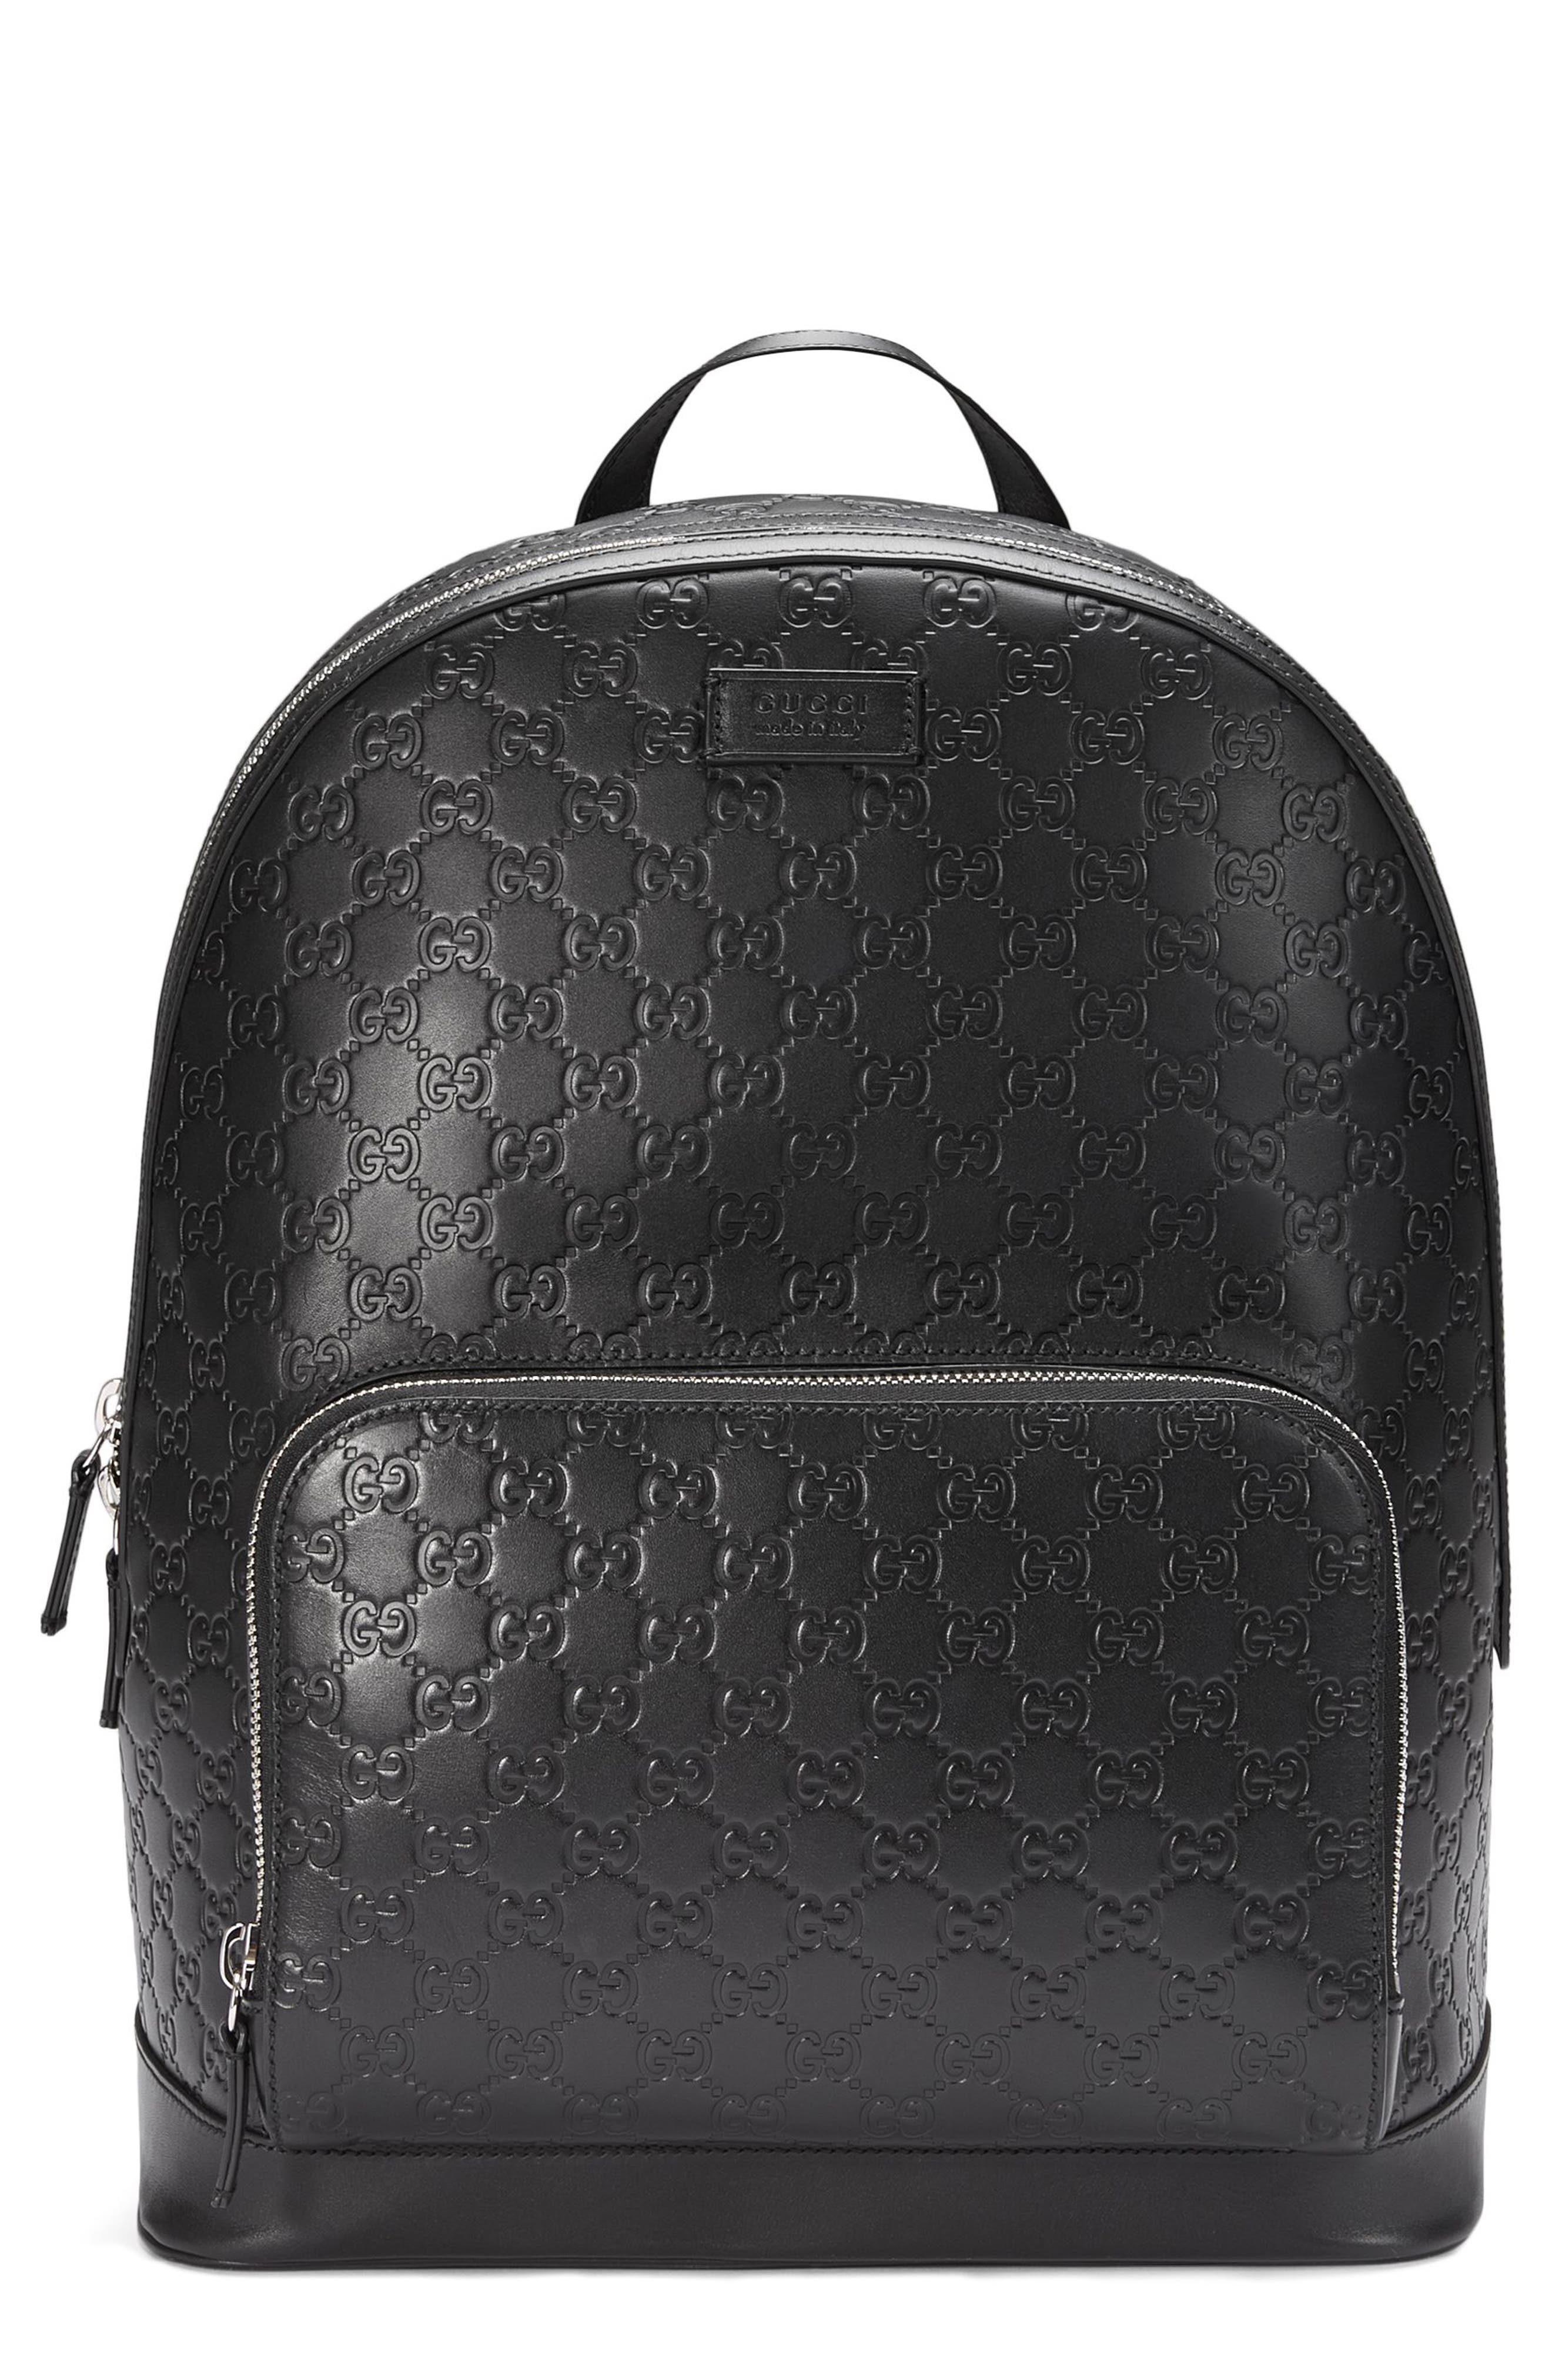 Embossed Leather Backpack,                             Main thumbnail 1, color,                             001